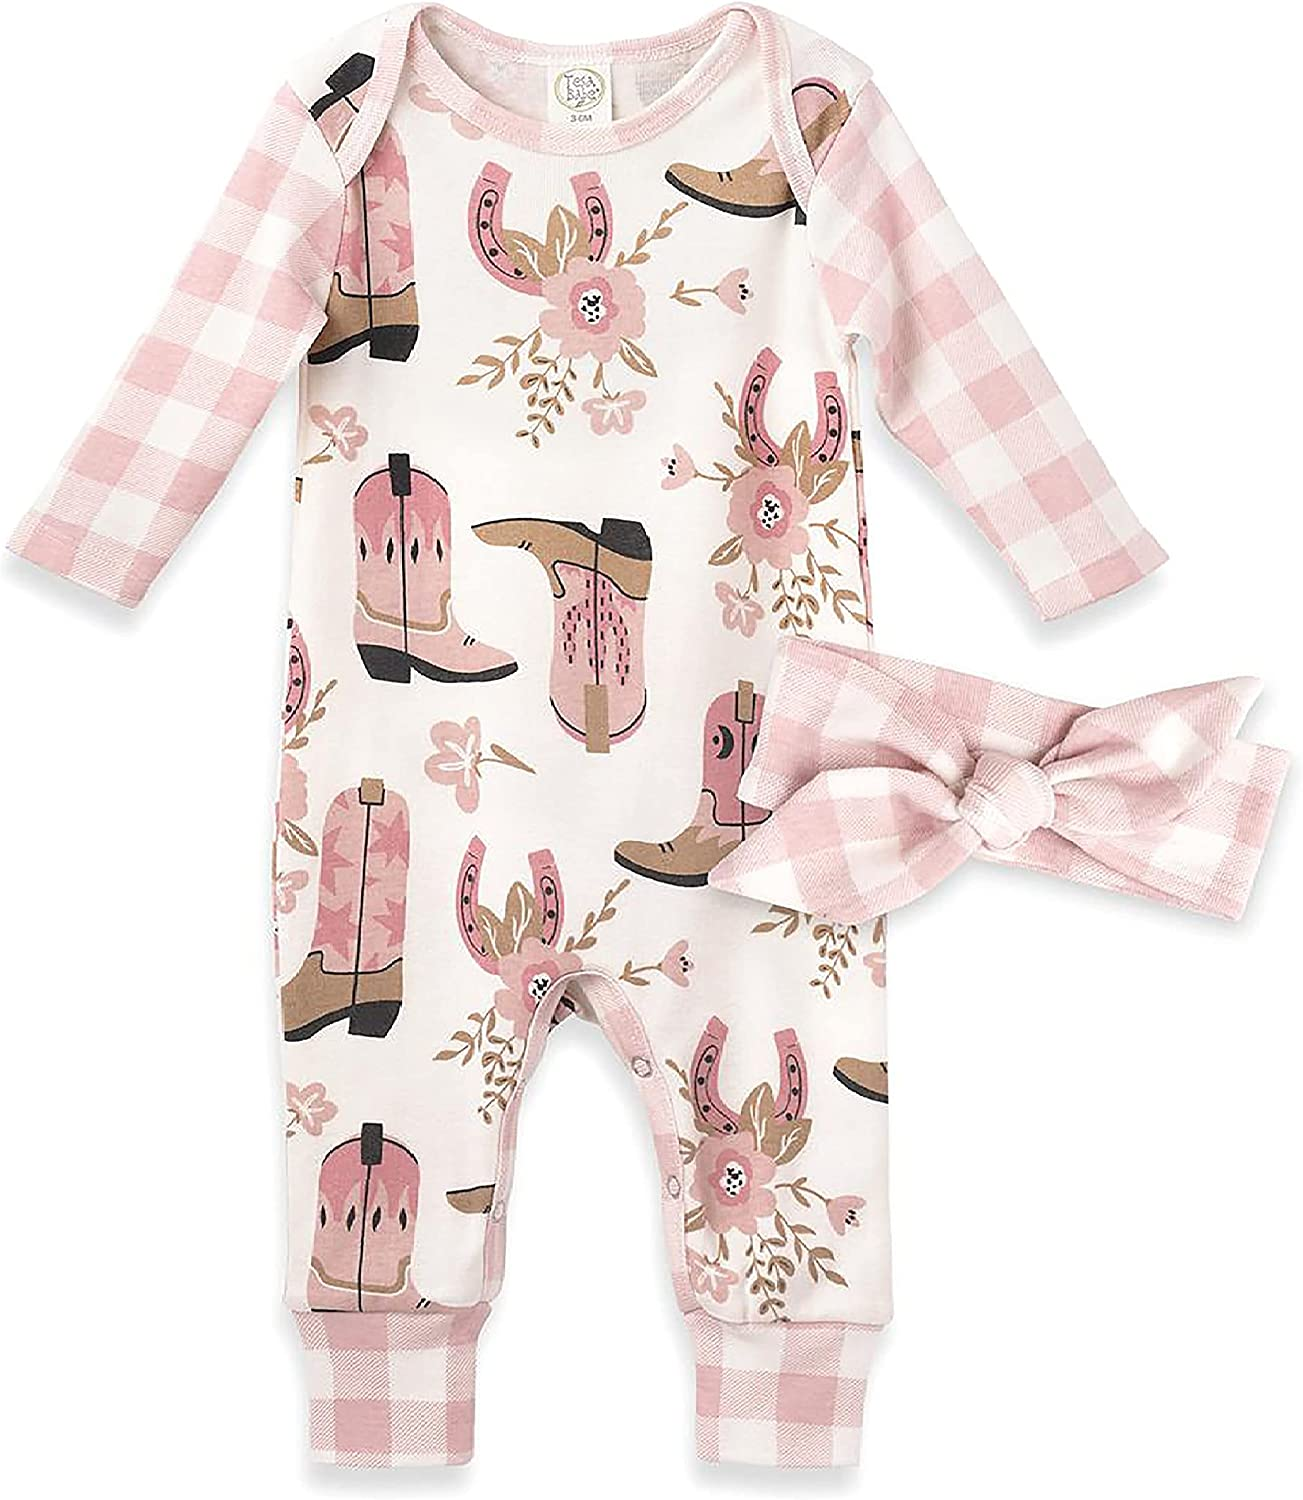 Tesa Babe Baby Girl Clothes Romper Jumpsuit Long-Sleeve Coverall Gift Set 0-18mo